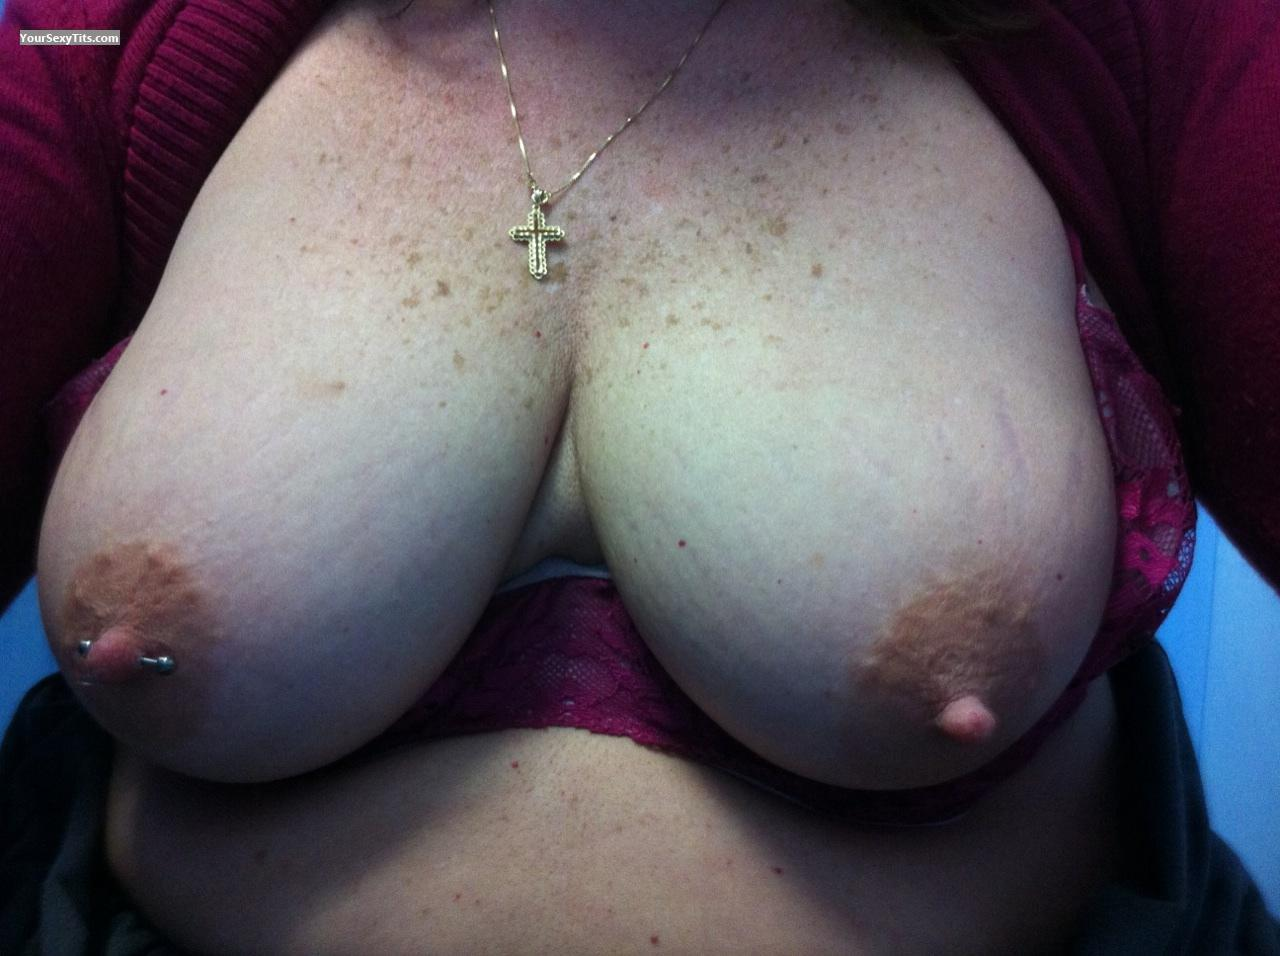 Tit Flash: My Medium Tits By IPhone (Selfie) - Camping Girl from United StatesPierced Nipples